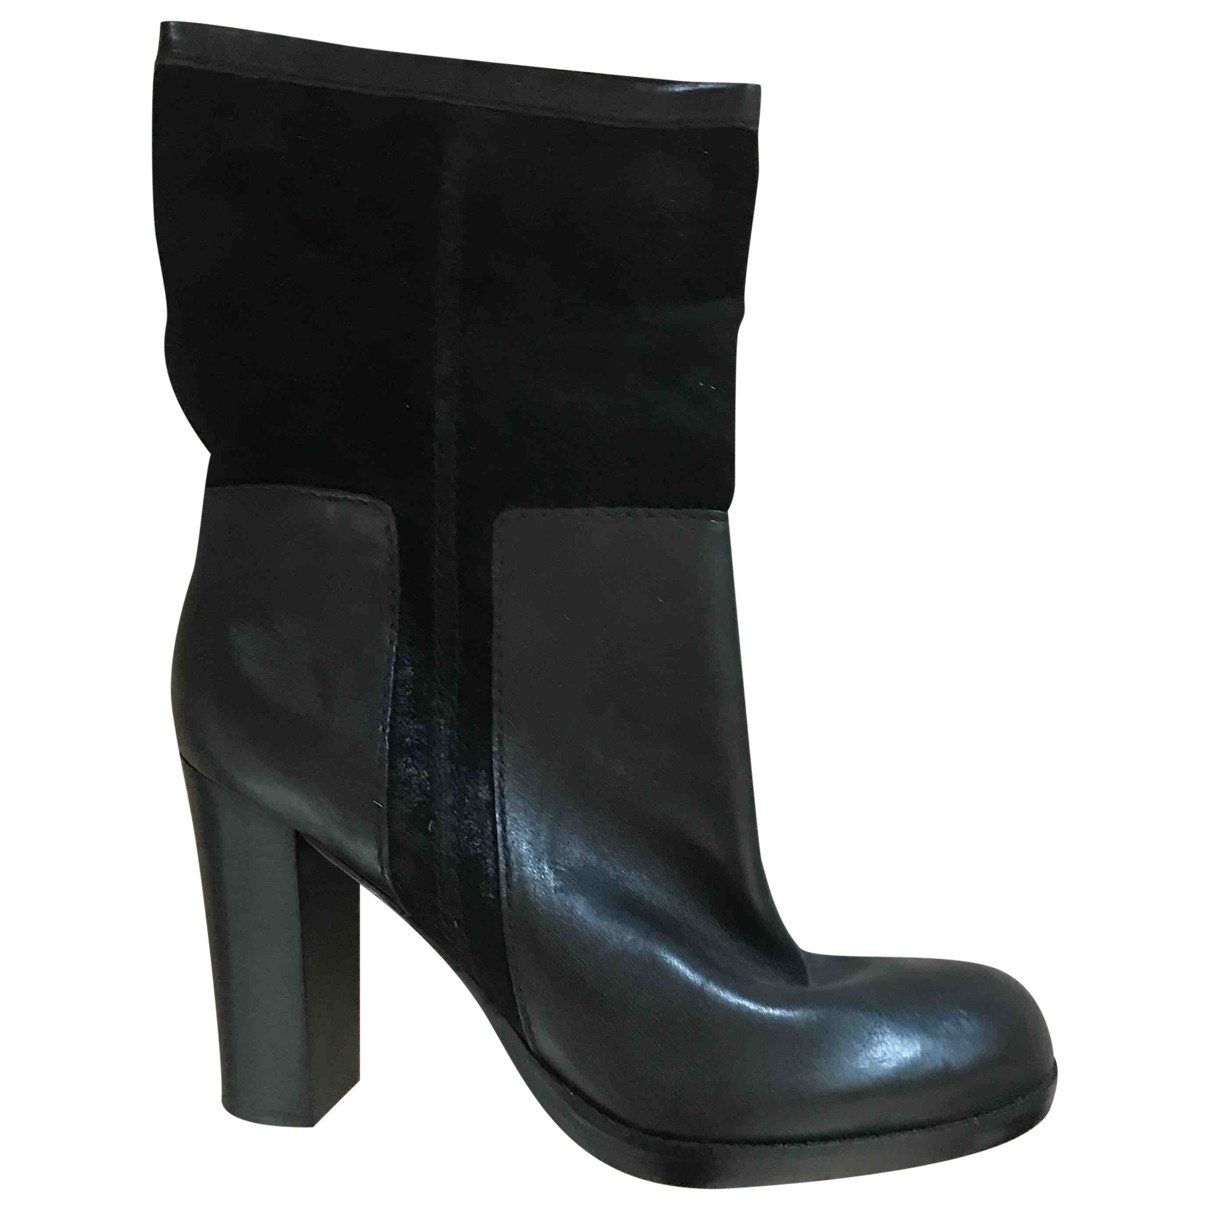 Nine West \N Black Leather Boots for Women 10 US